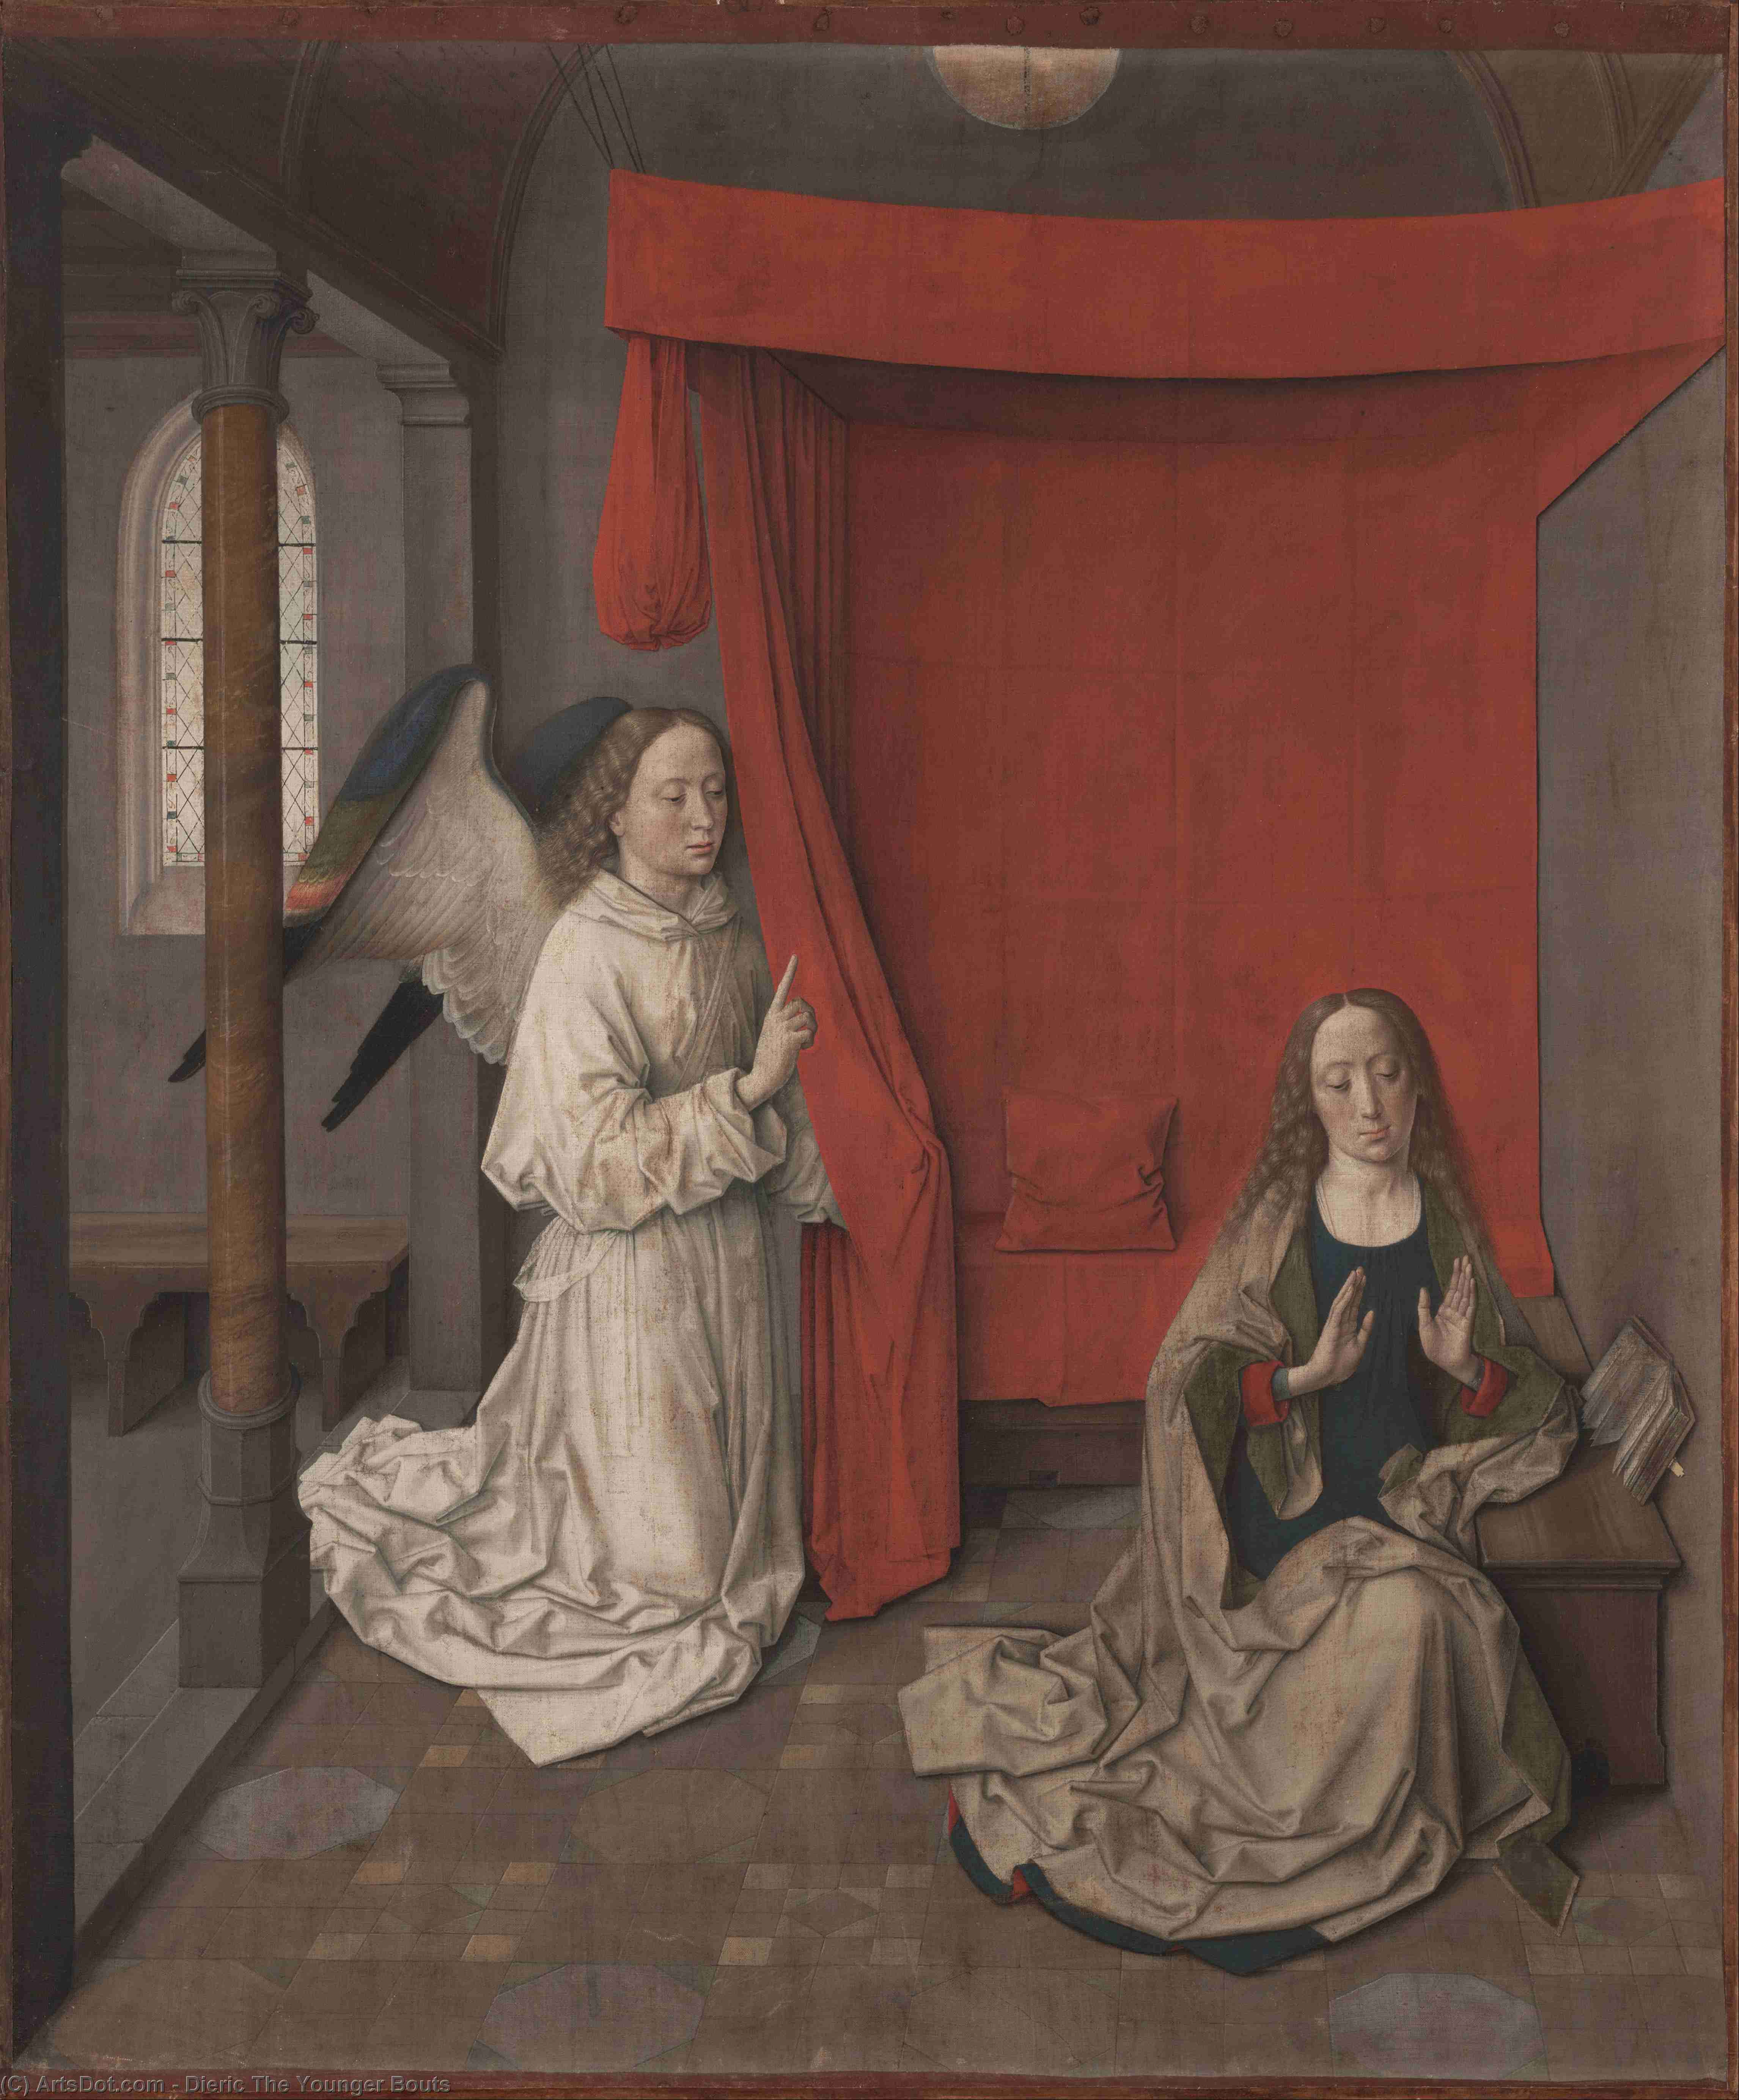 Annonciation de Dieric The Younger Bouts (1415-1475, Belgium) | Reproductions De Qualité Musée | ArtsDot.com